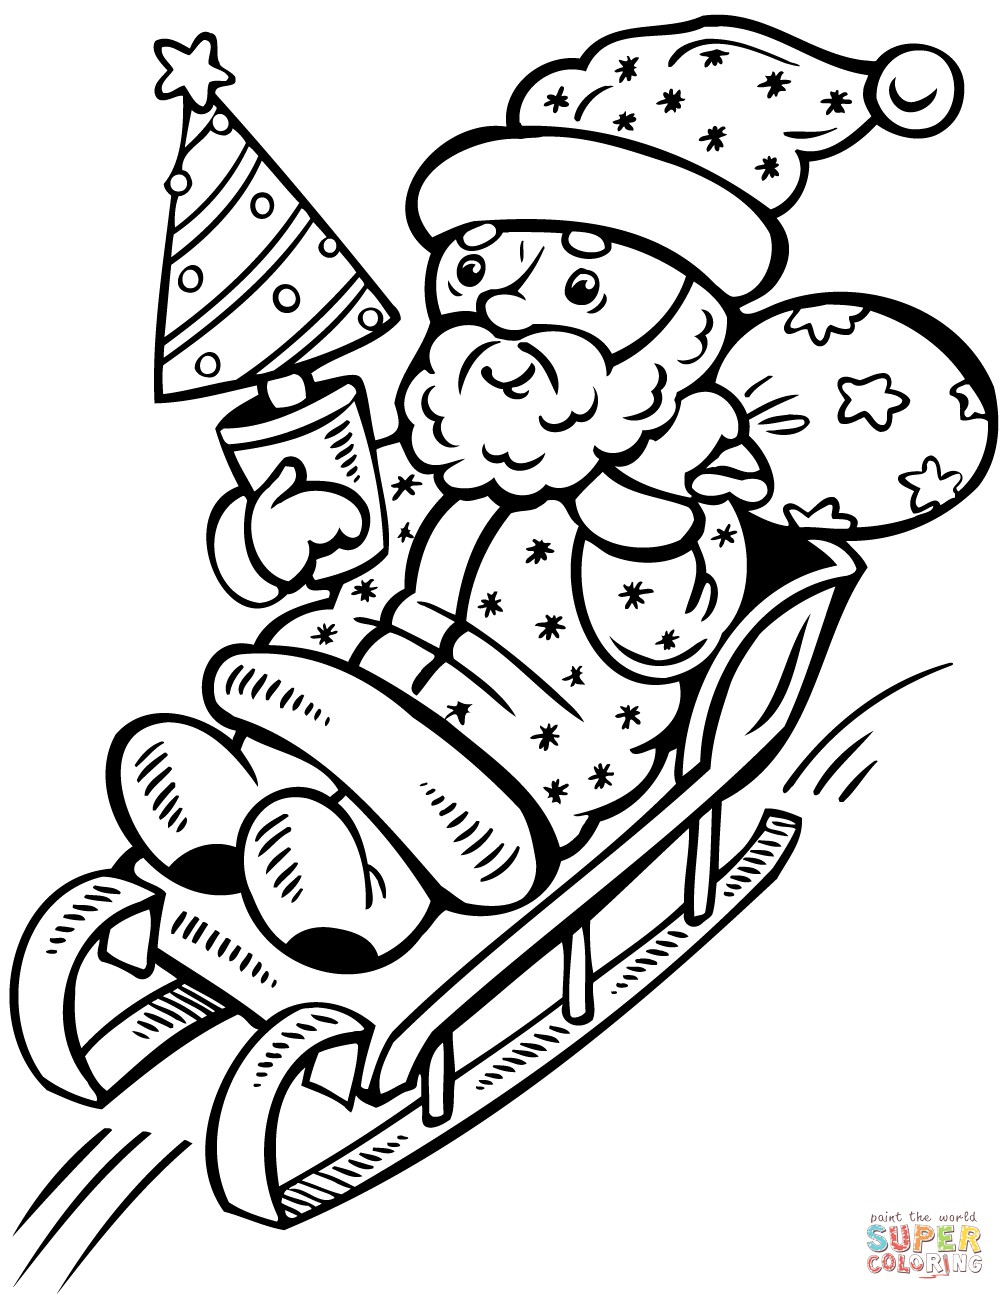 Santa Claus In Sleigh Coloring Page Santa Claus On Sleigh With Christmas Tree Coloring Page Free Awesome